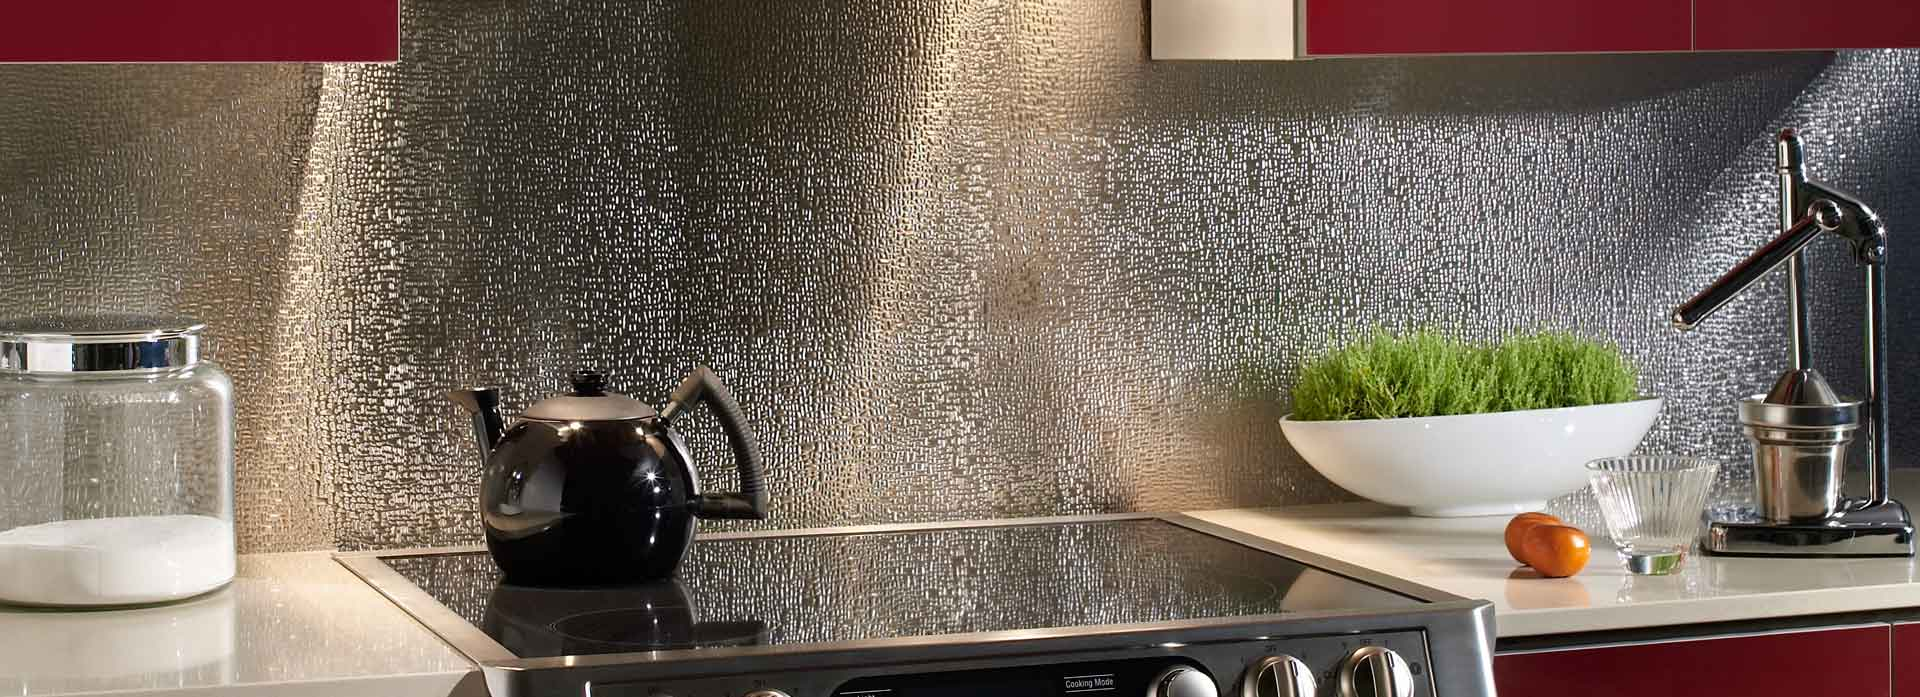 Using Stainless Steel For A Kitchen Backsplash When